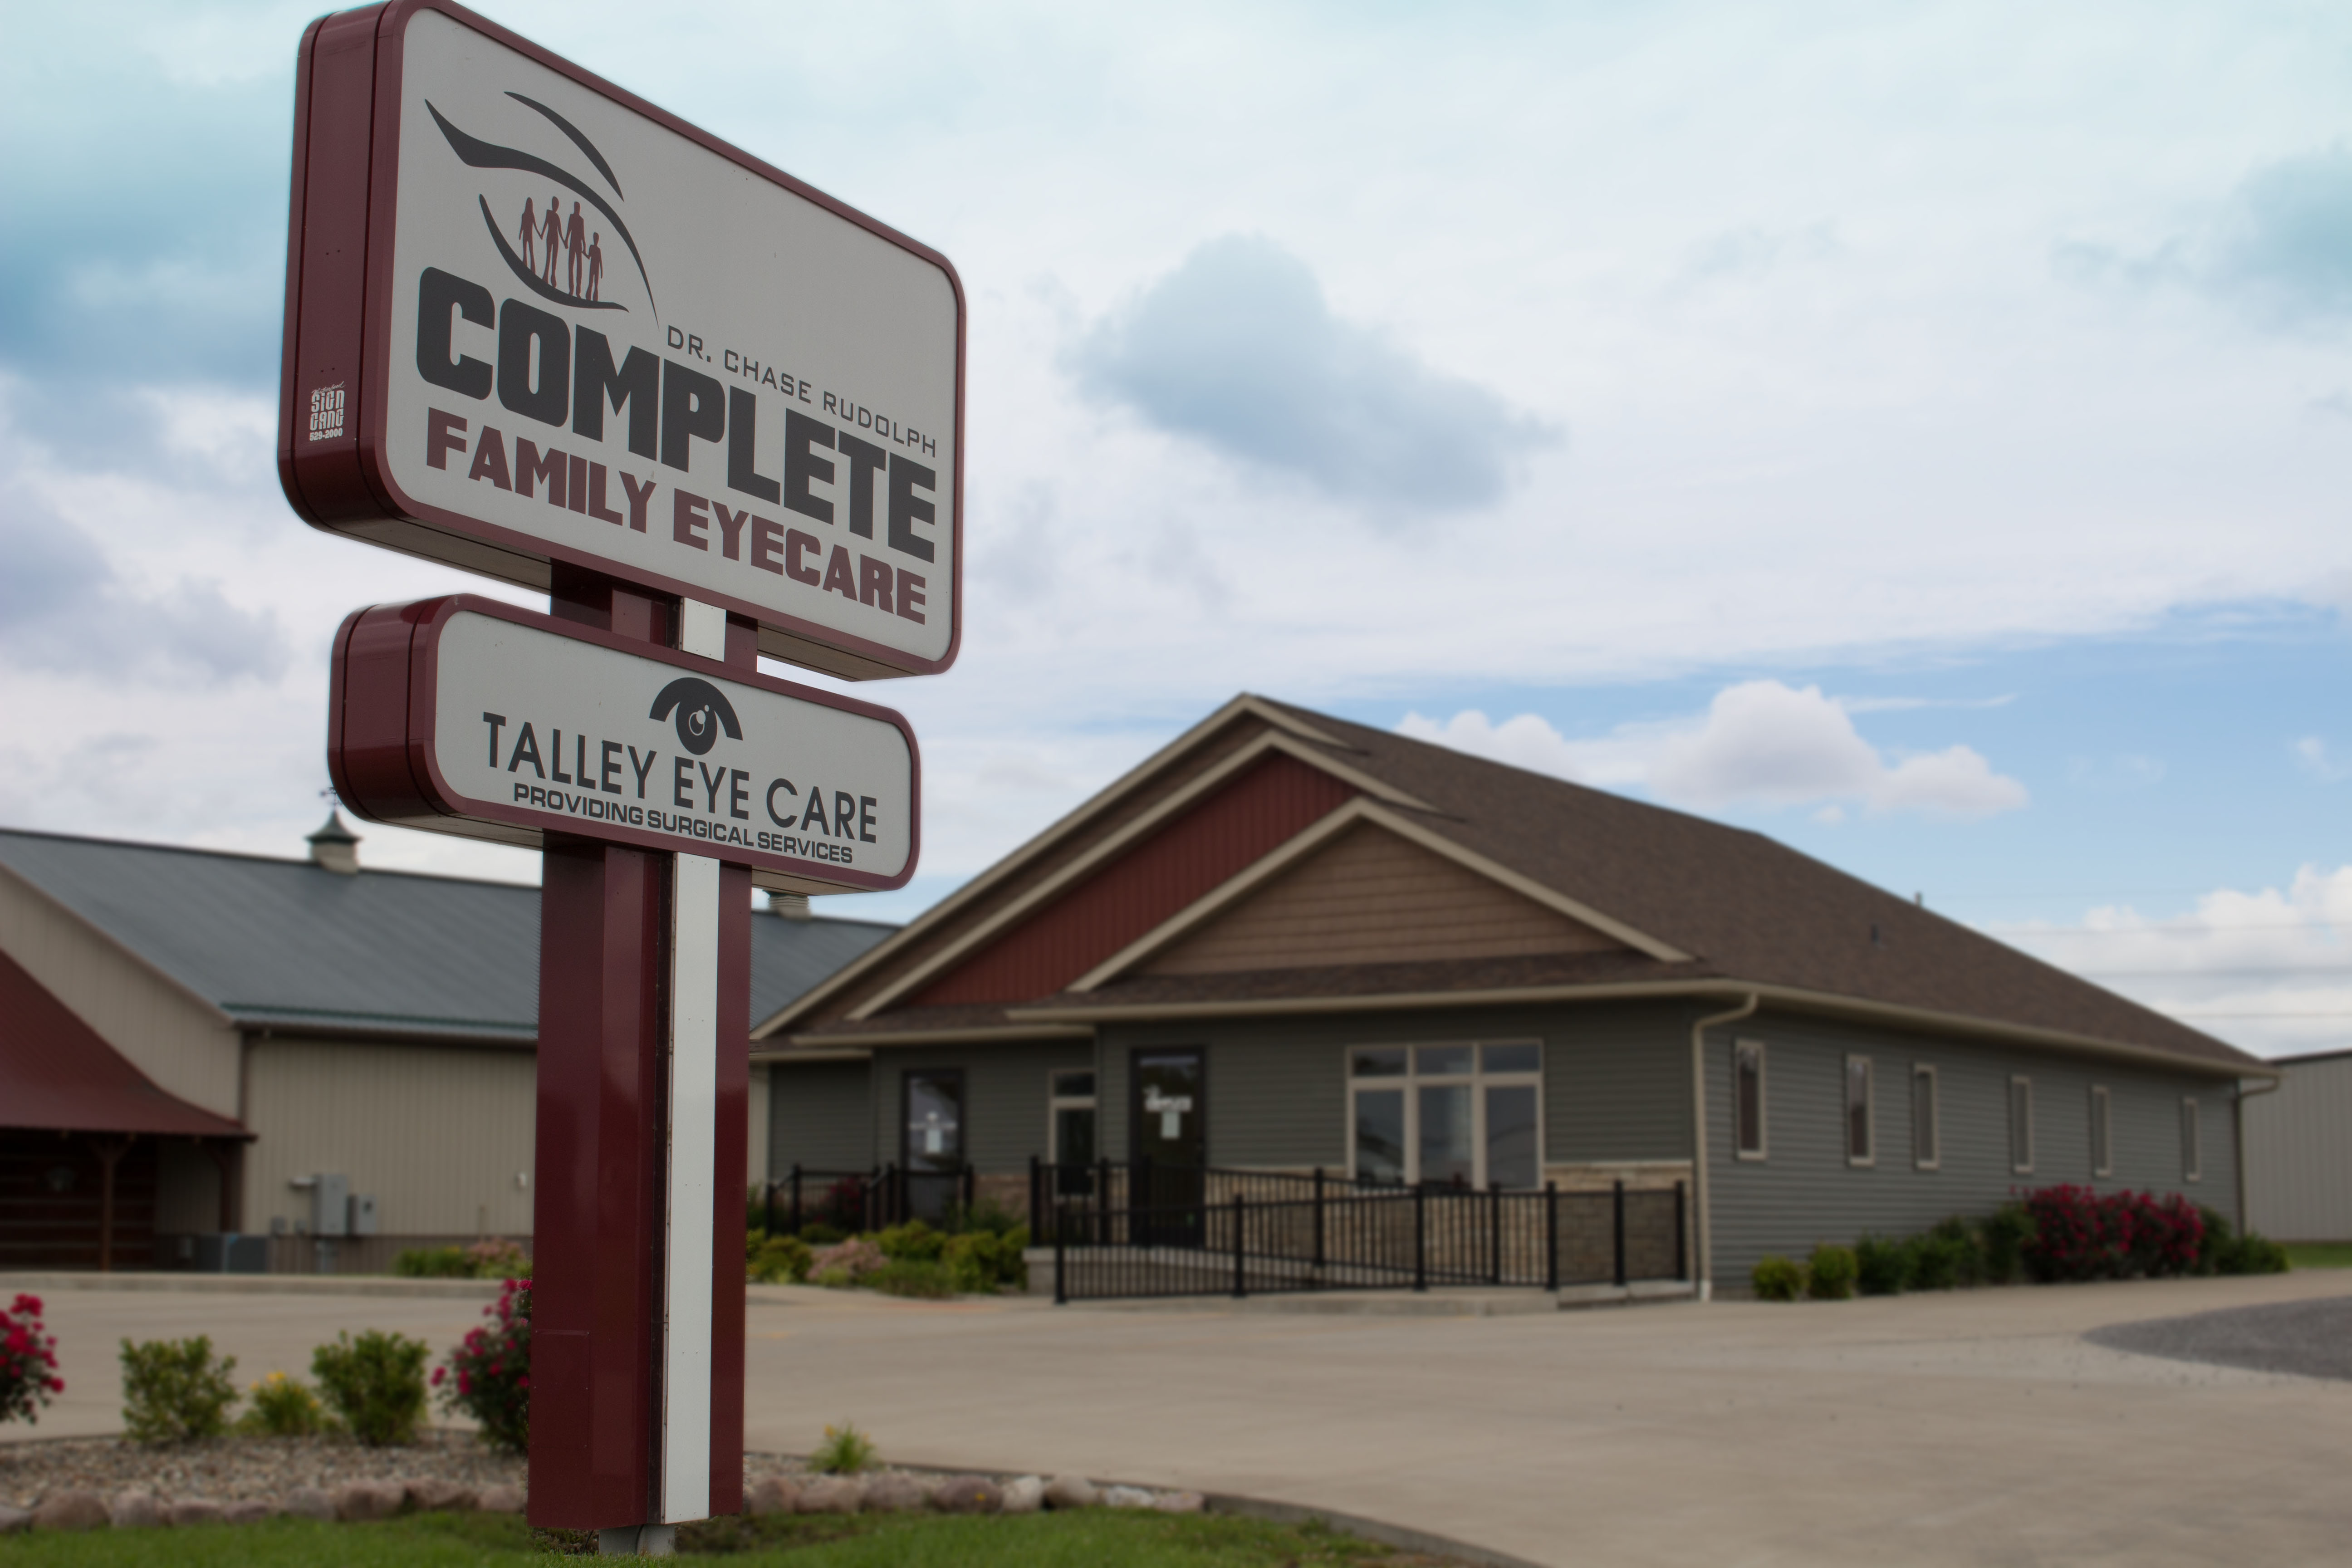 Complete Family Eye Care Facility